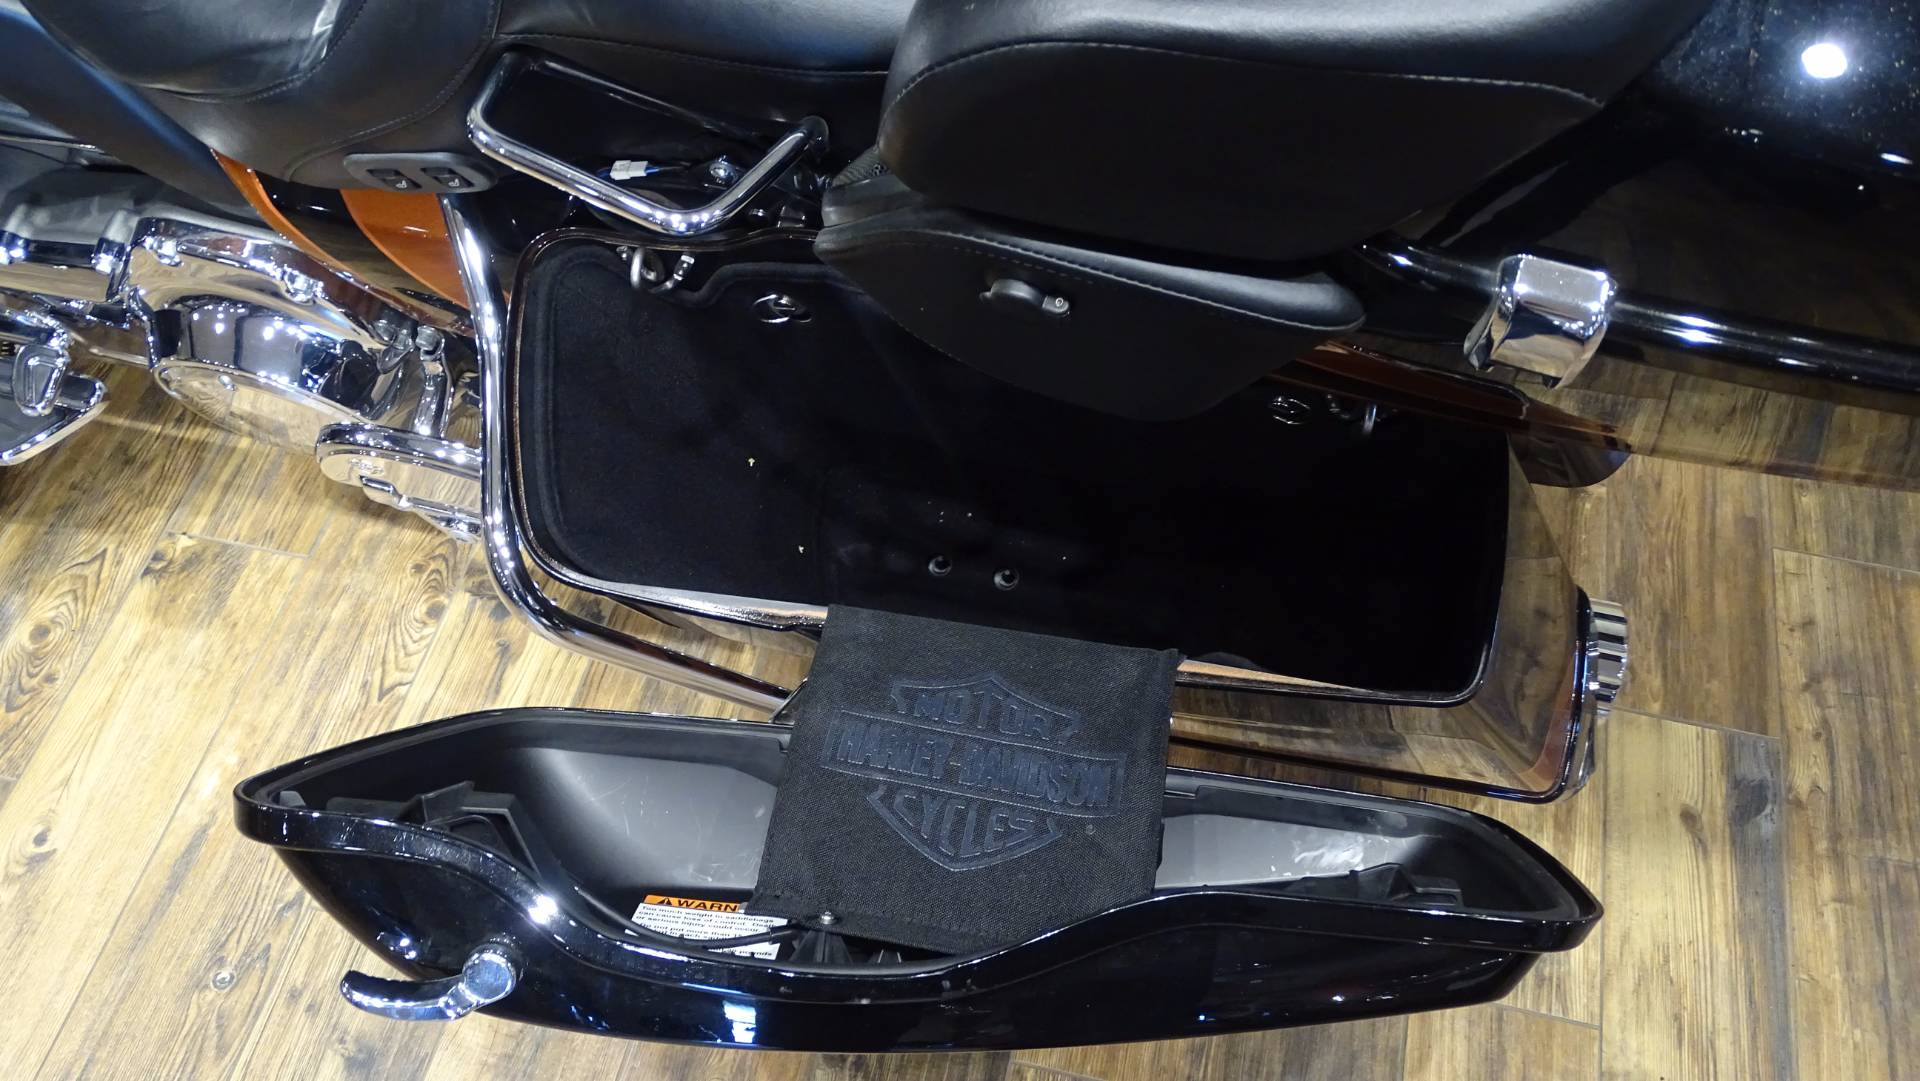 2015 Harley-Davidson road glide ultra limited cvo in Saint Michael, Minnesota